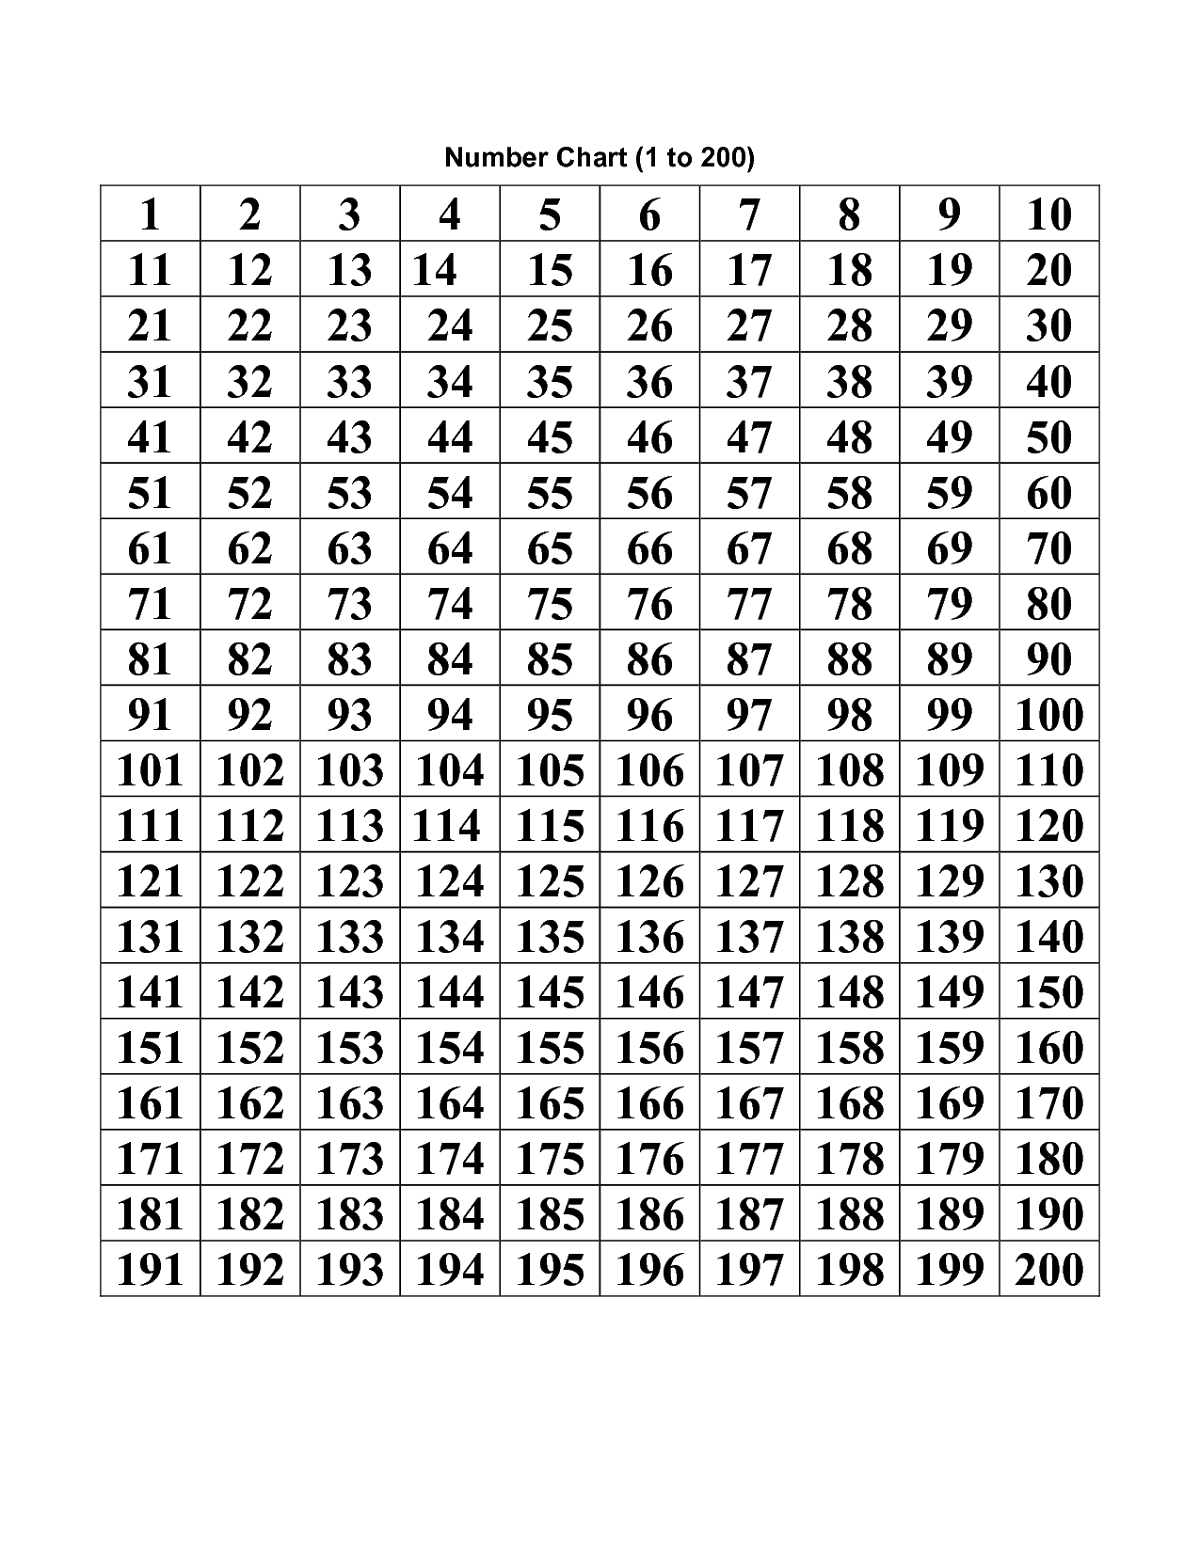 Number chart printable cool things to know pinterest also oyumanmarine rh